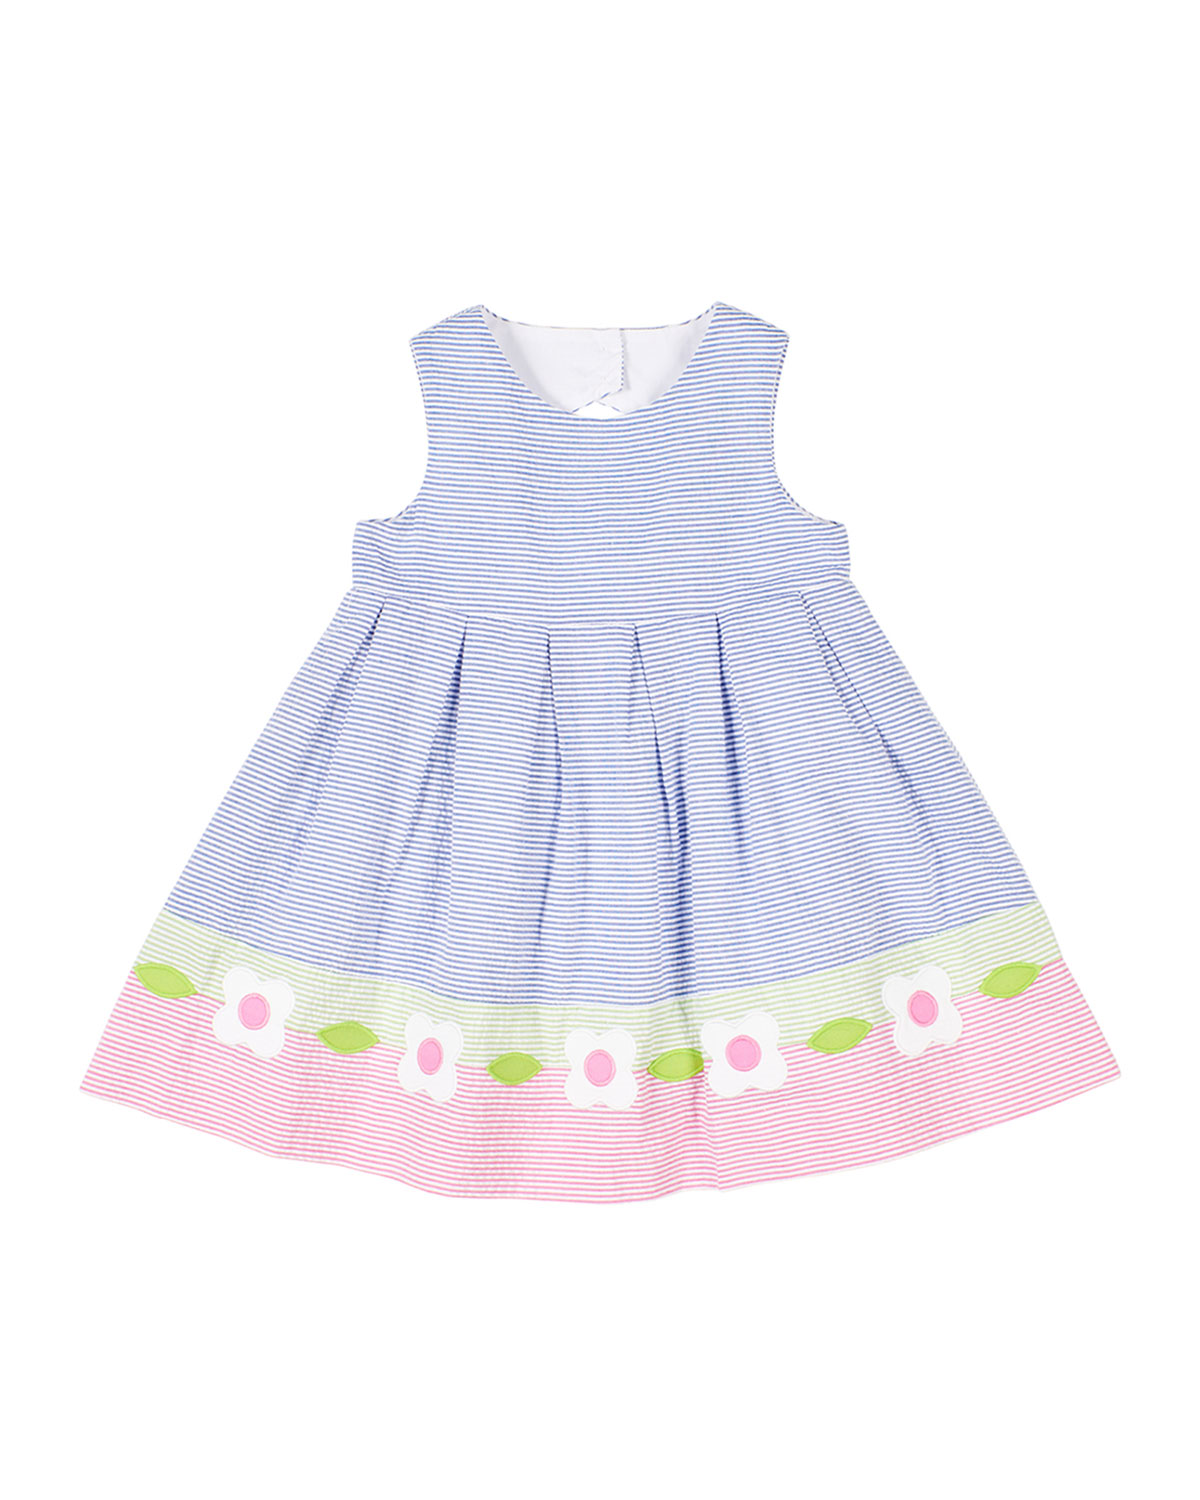 Florence Eiseman Cottons GIRL'S MULTICOLOR SEERSUCKER DRESS W/ FLOWERS